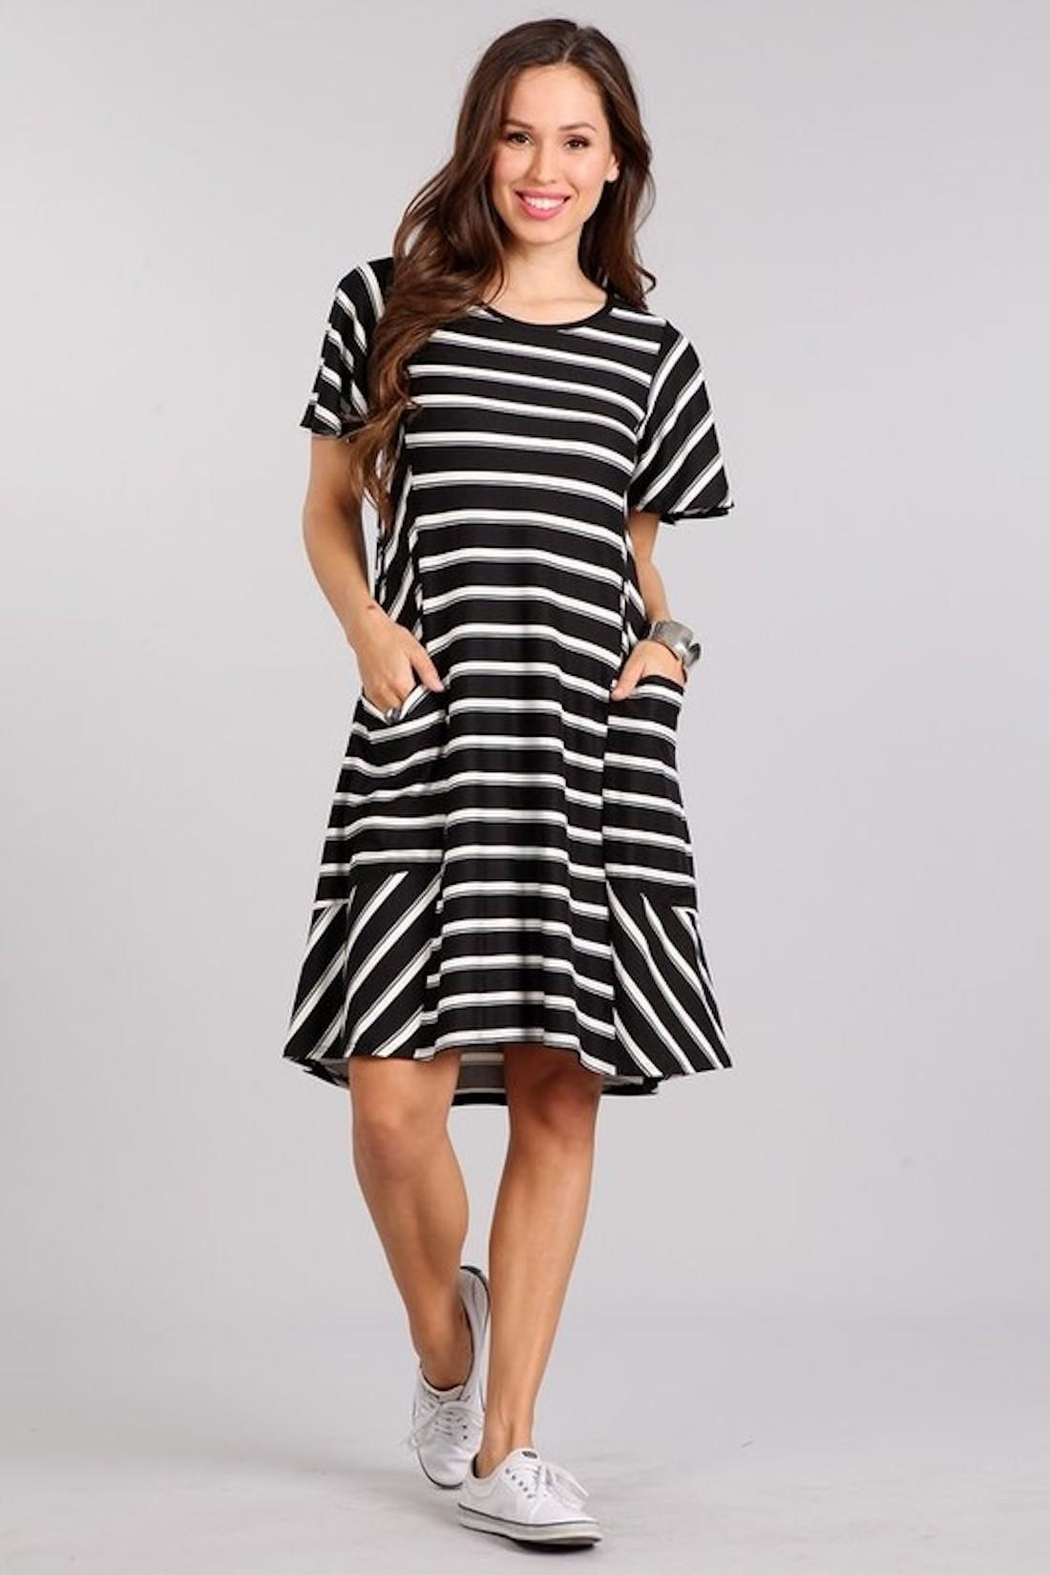 11956d8e18 Chris   Carol Black white Striped Dress from Los Angeles by AndyLiz ...